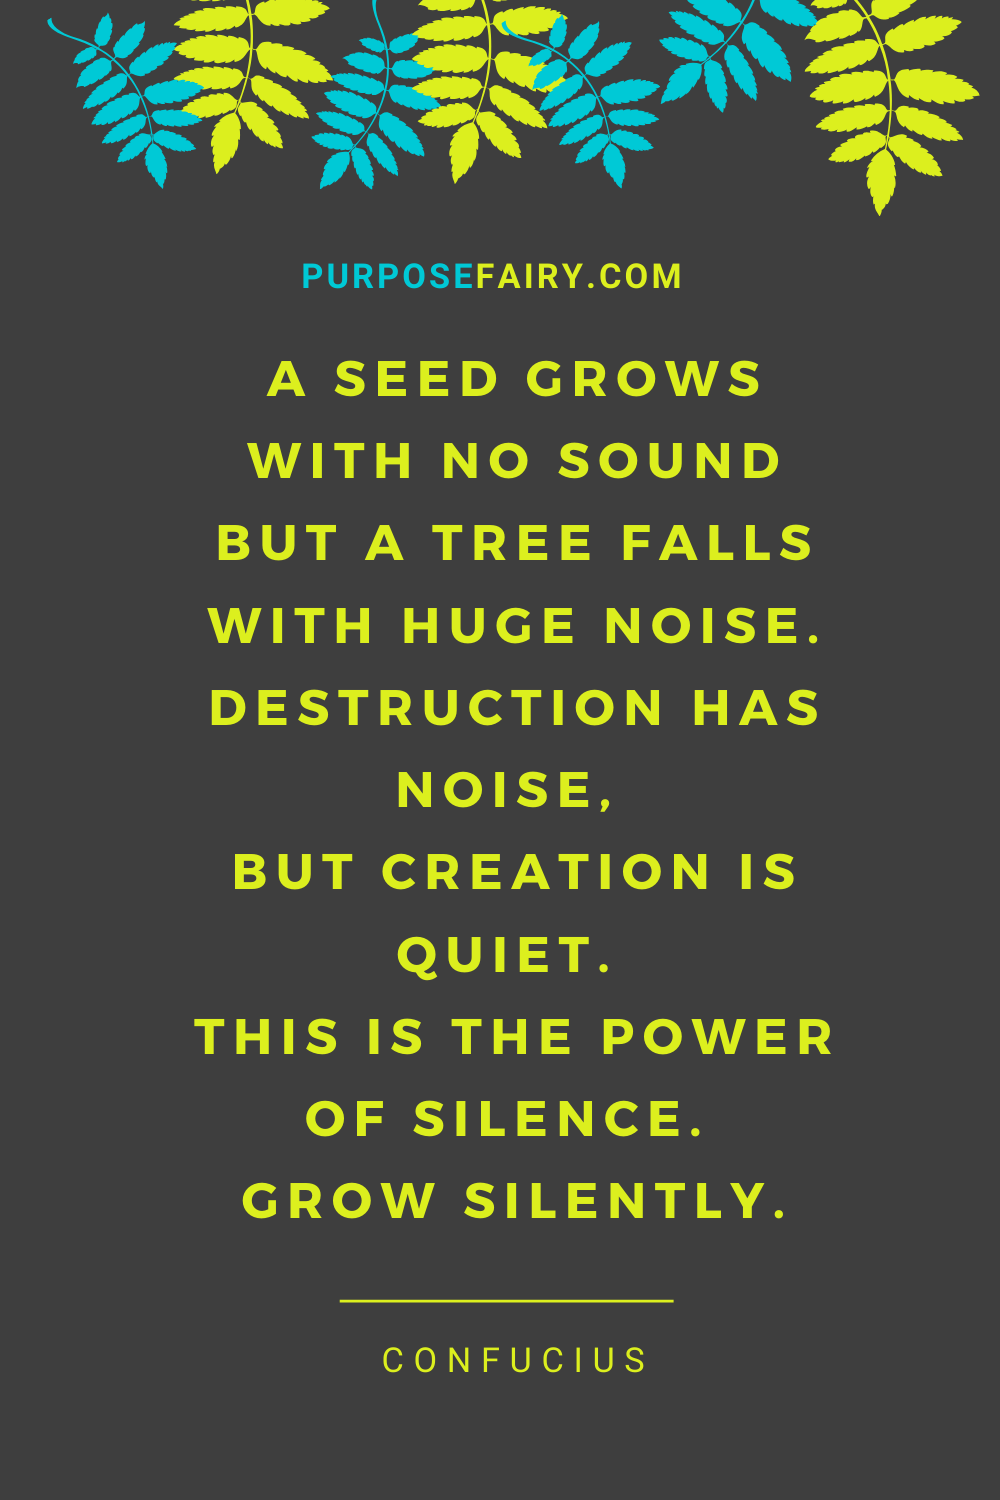 A seed grows with no sound but a tree falls with huge noise. Destruction has noise, but creation is quiet. This is the power of silence. Grow silently. ~ Confucius